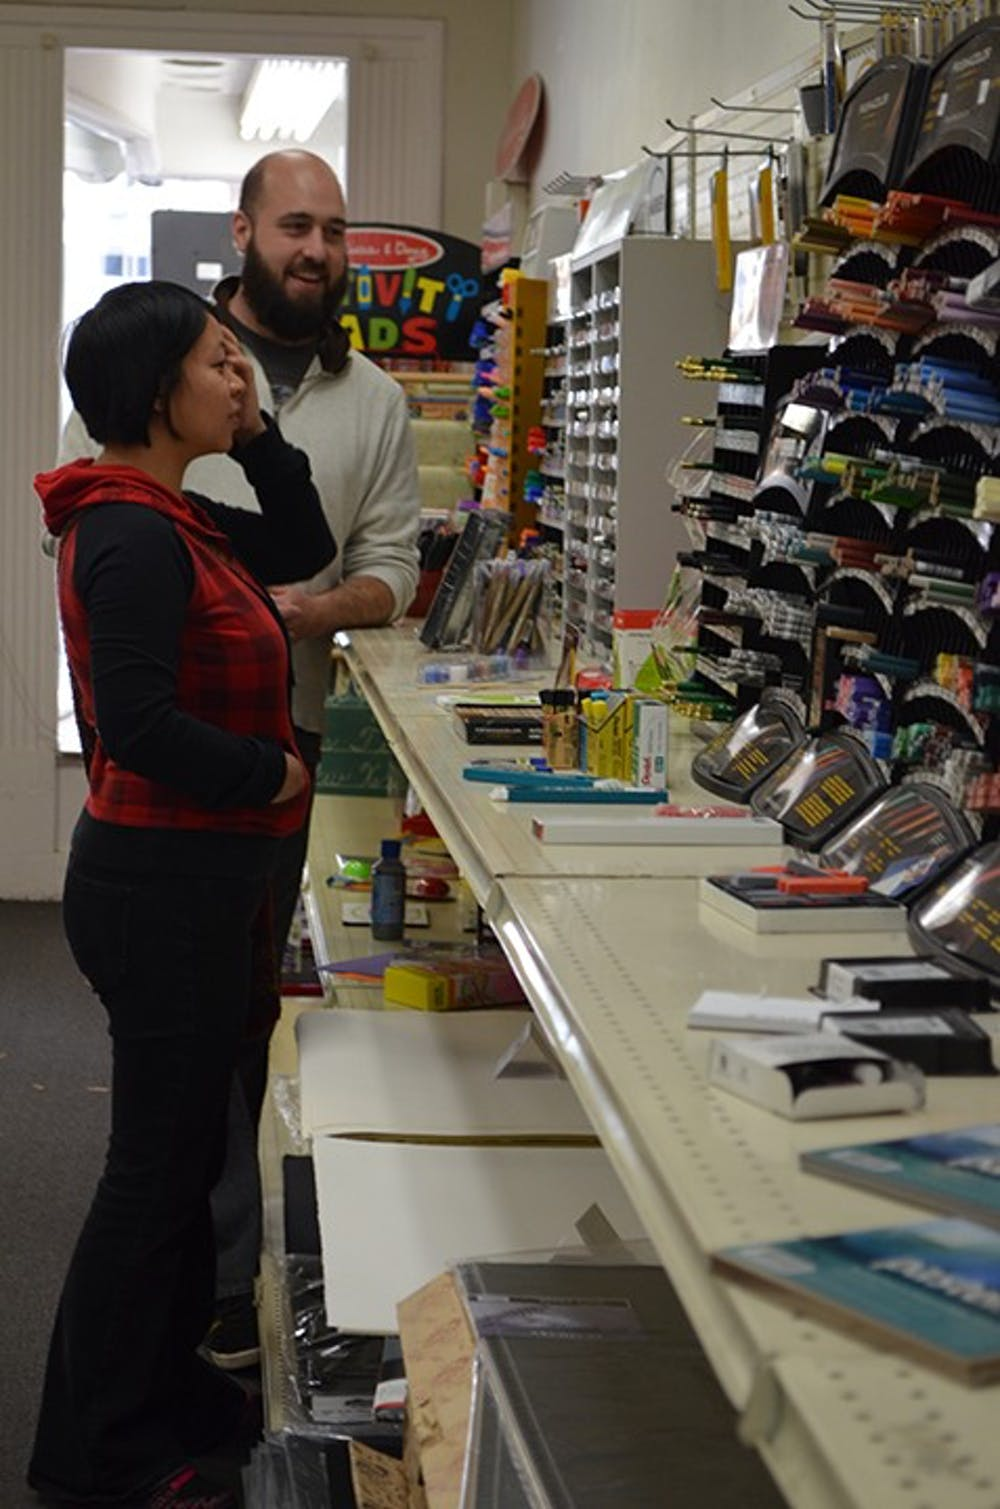 <p>S&amp;S Art Supply owner Eric Stockard helps a customer choose supplies. The store will close this month.</p>